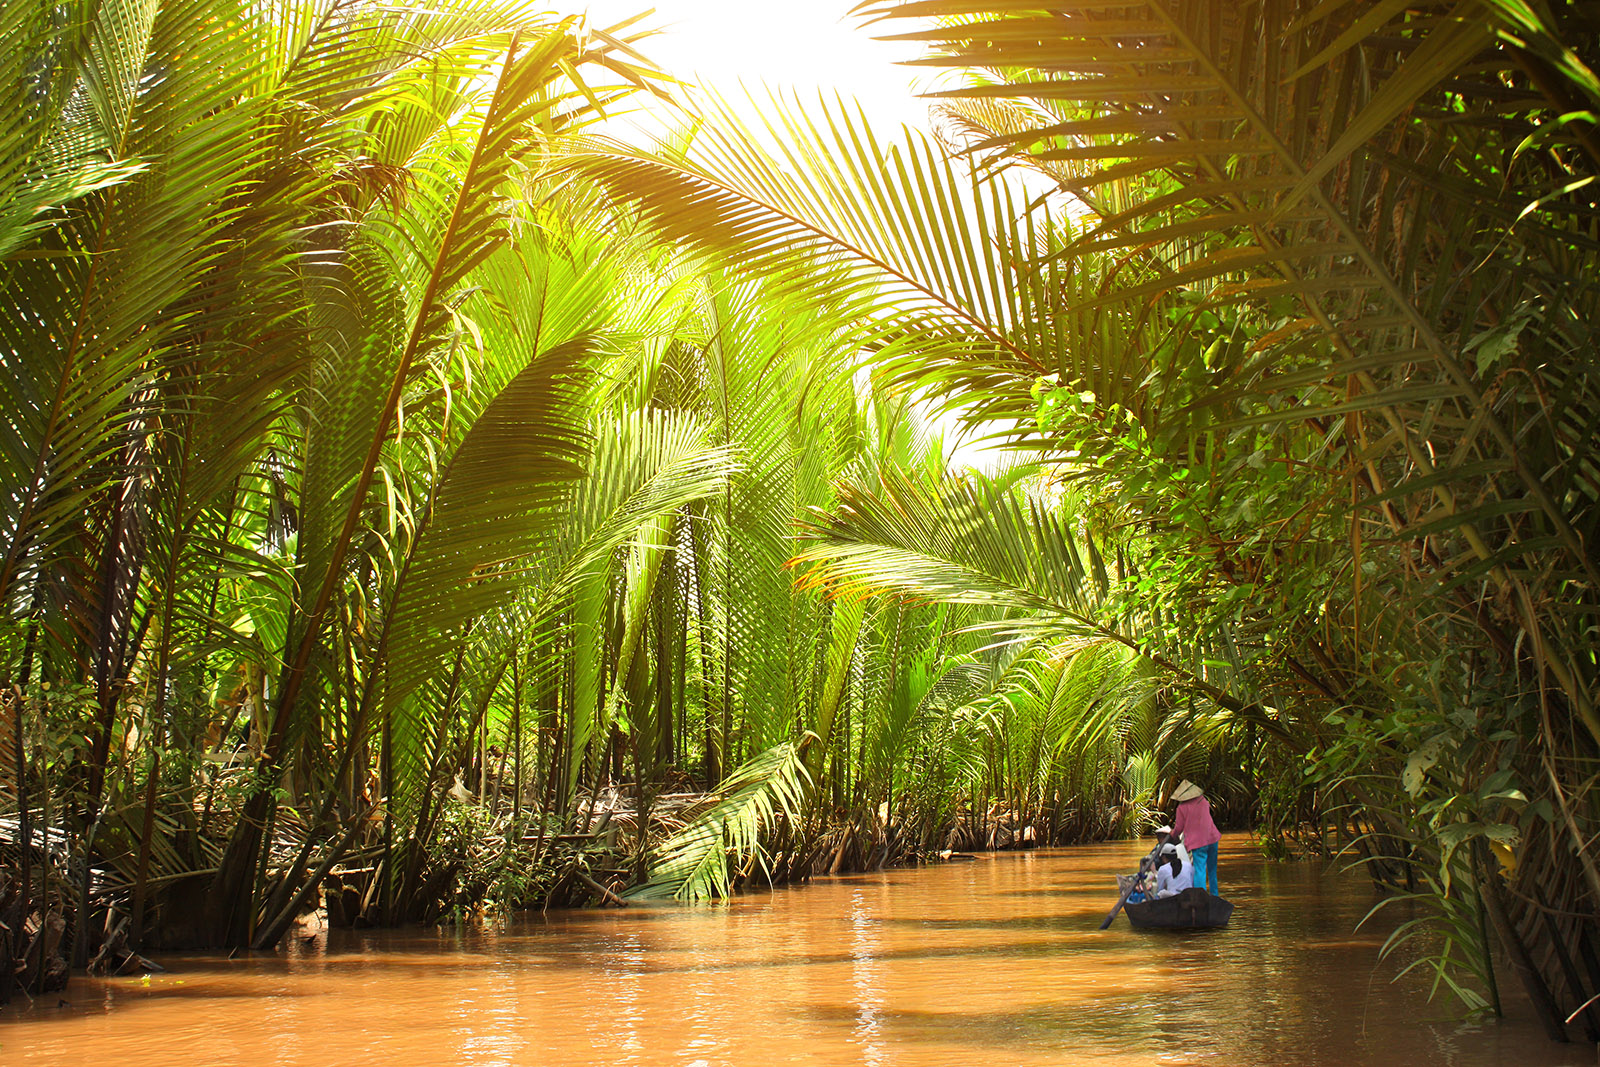 a person paddling a canoe on the mekong river in vietnam